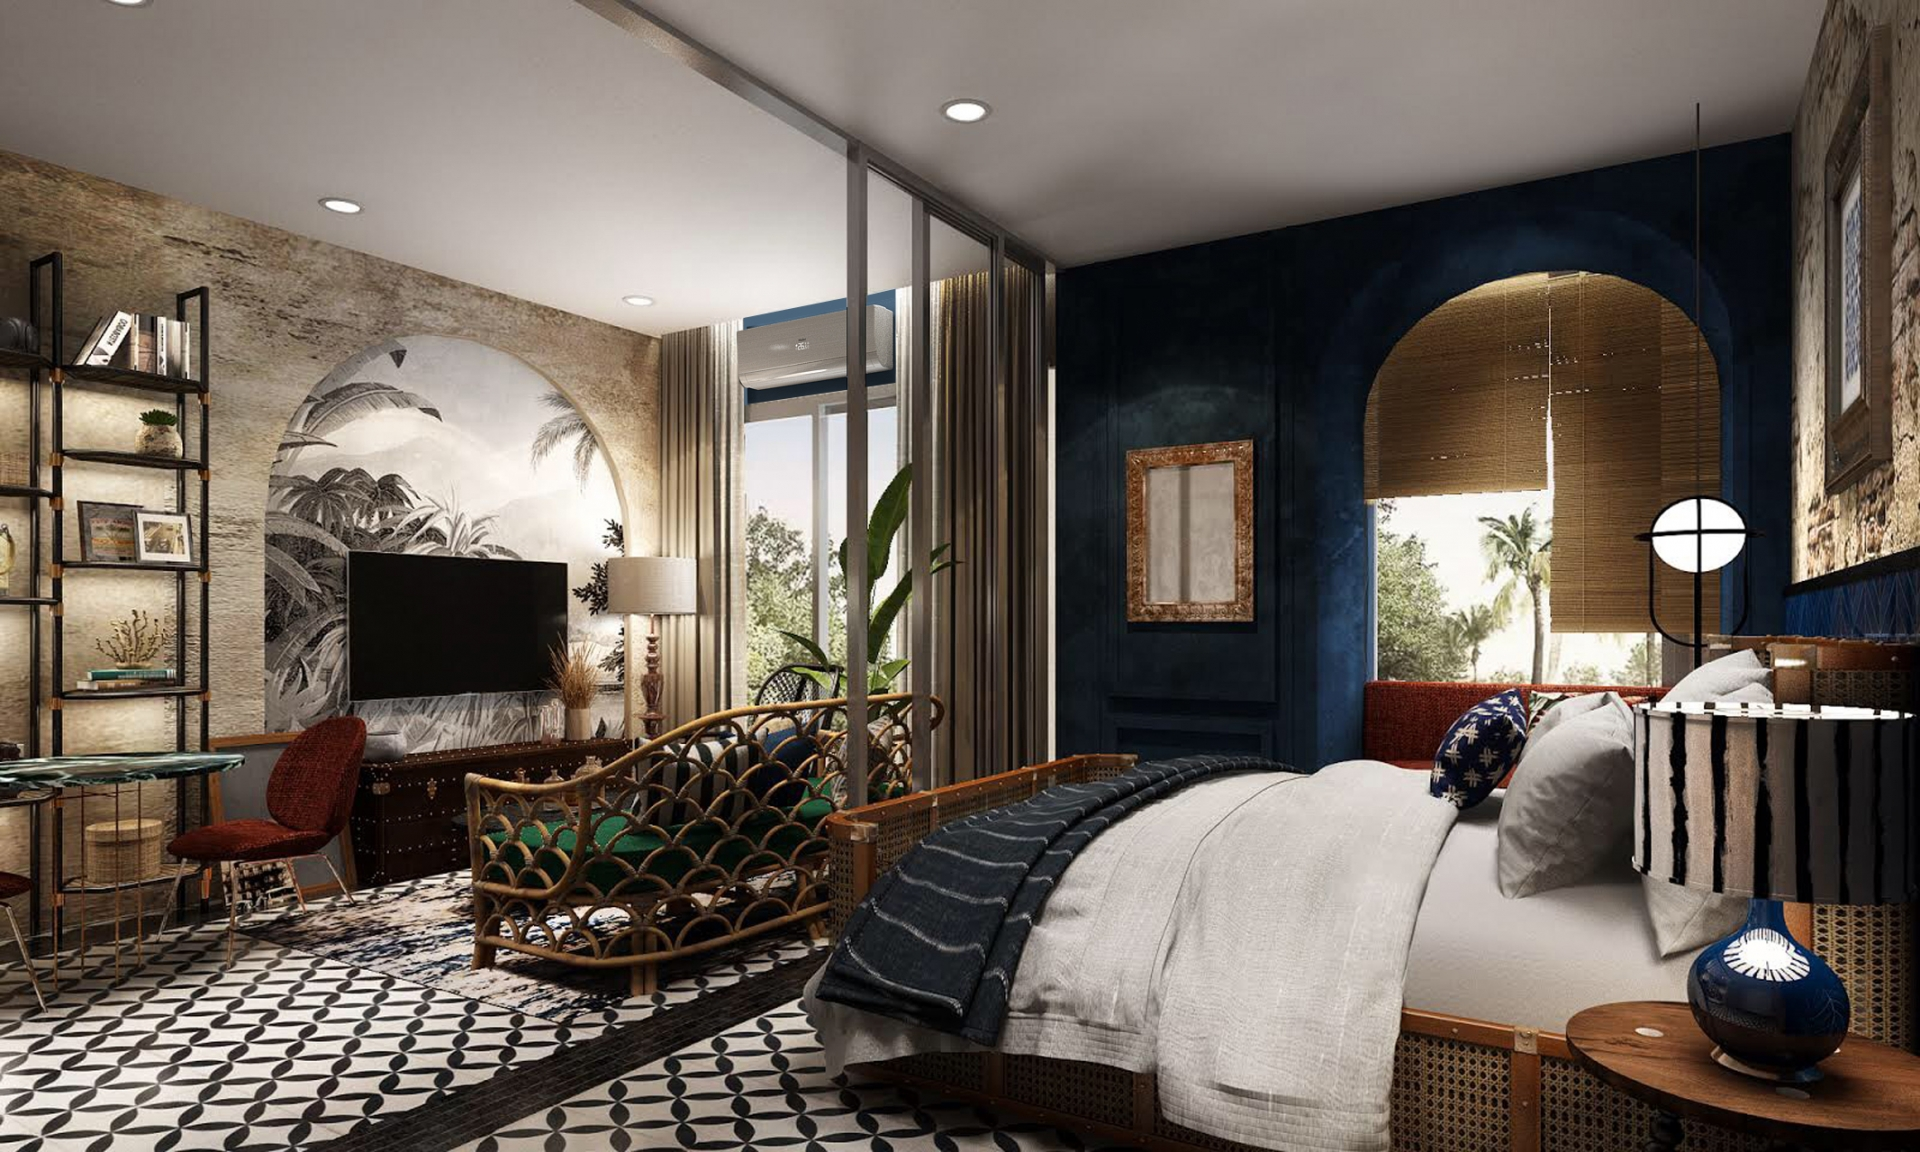 spanish style comes to thailands resort city hua hin